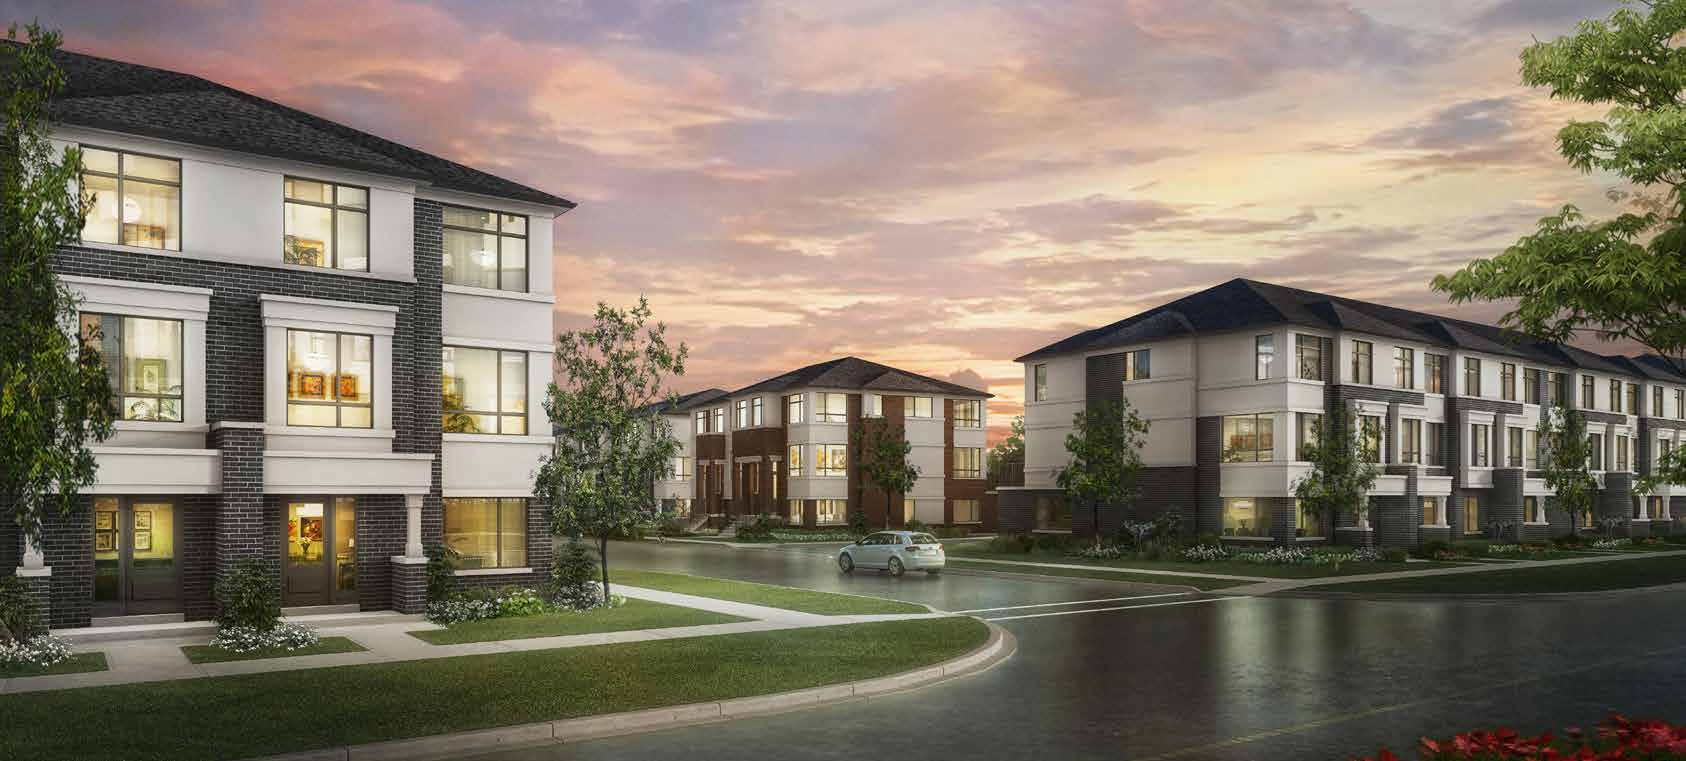 Lot 47, Canyon Hill Townhome